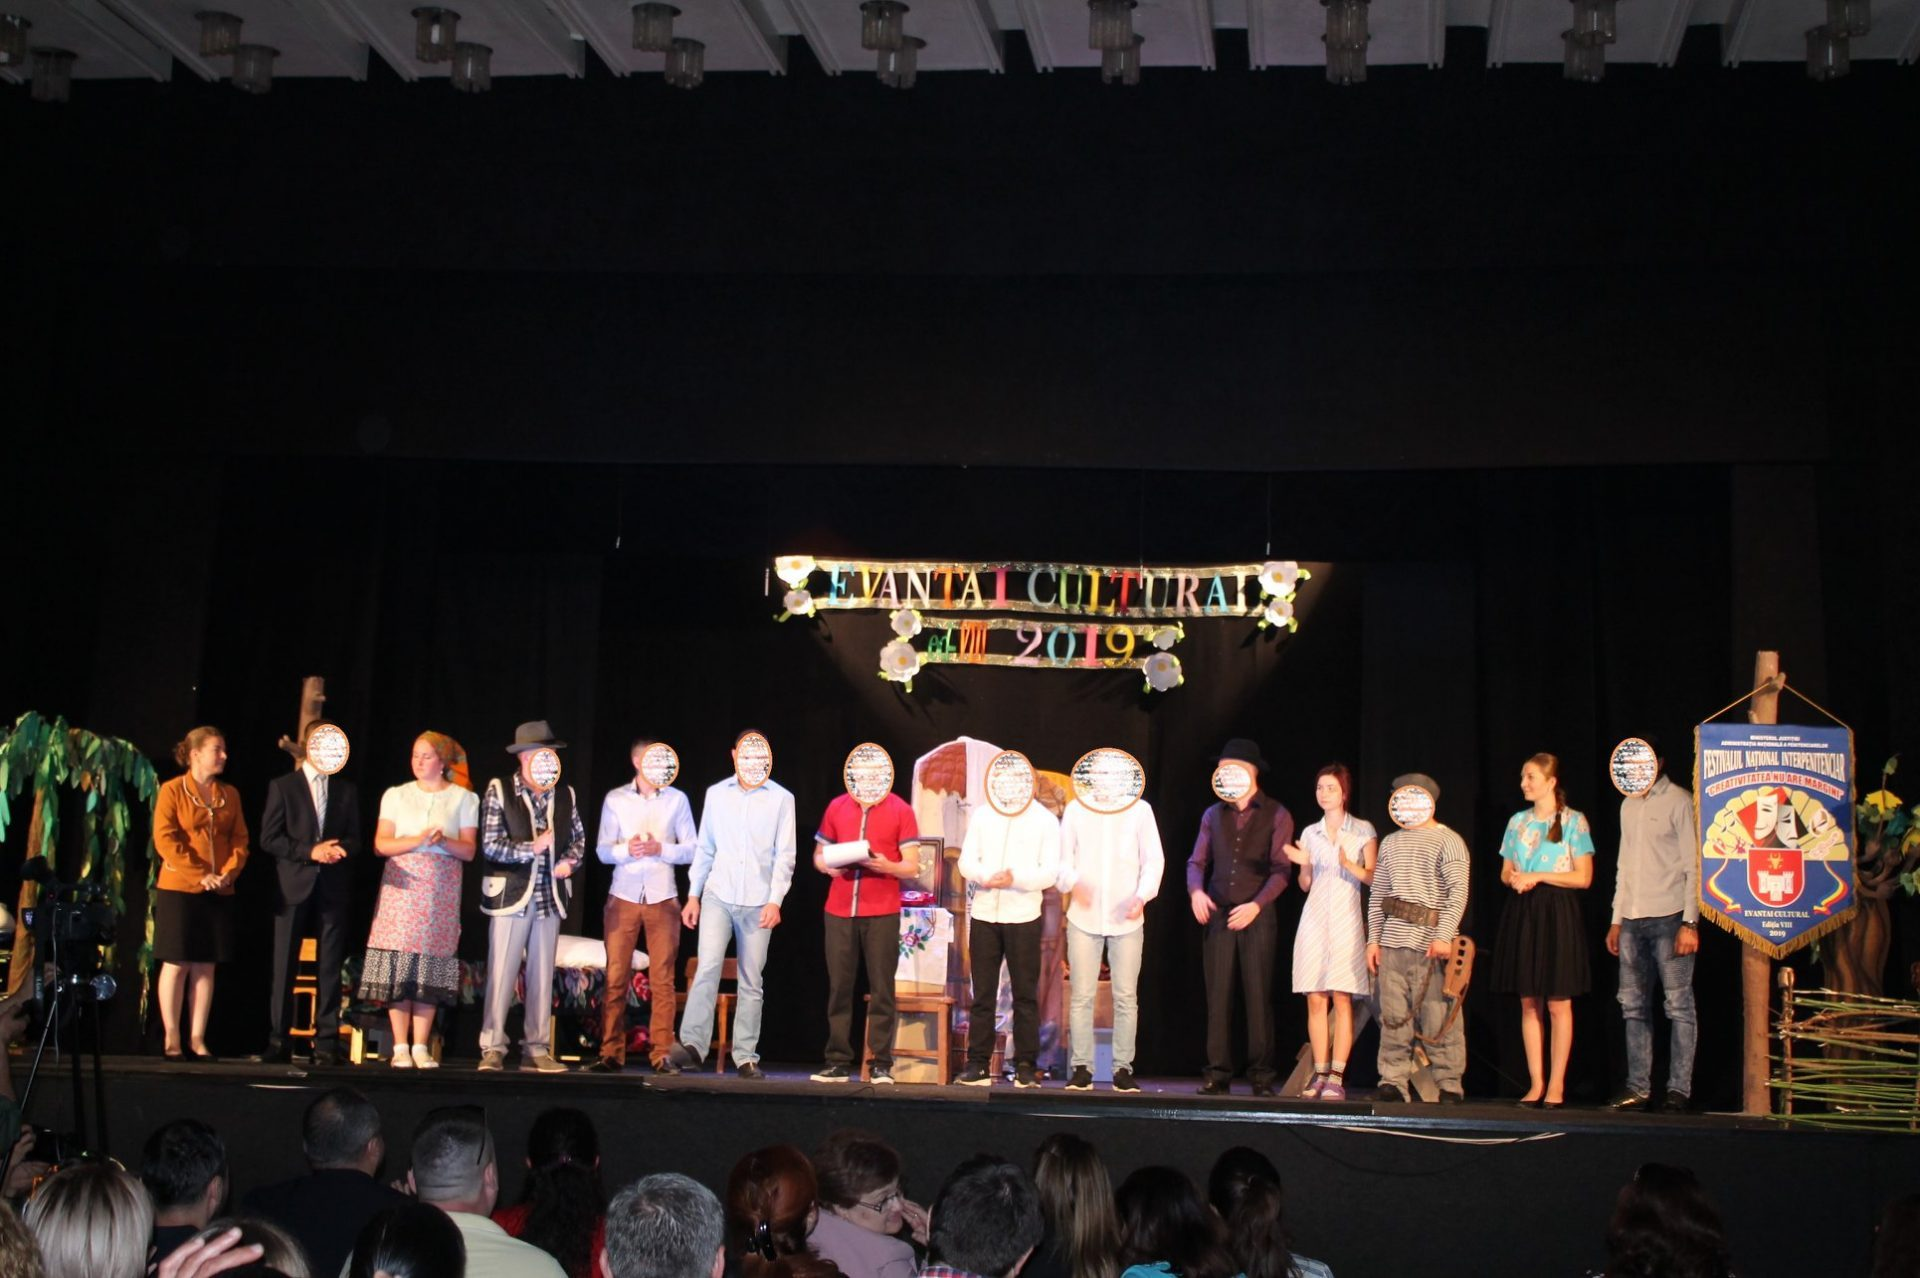 """Novel event conducted under the aegis of the children's rights ombudsperson – 11 minors of the Penitentiary no. 10 of Goian presented the piece """"Testamentul"""", put on during the inter-penitentiary festival """"Evantai cultural"""", the viiith edition"""